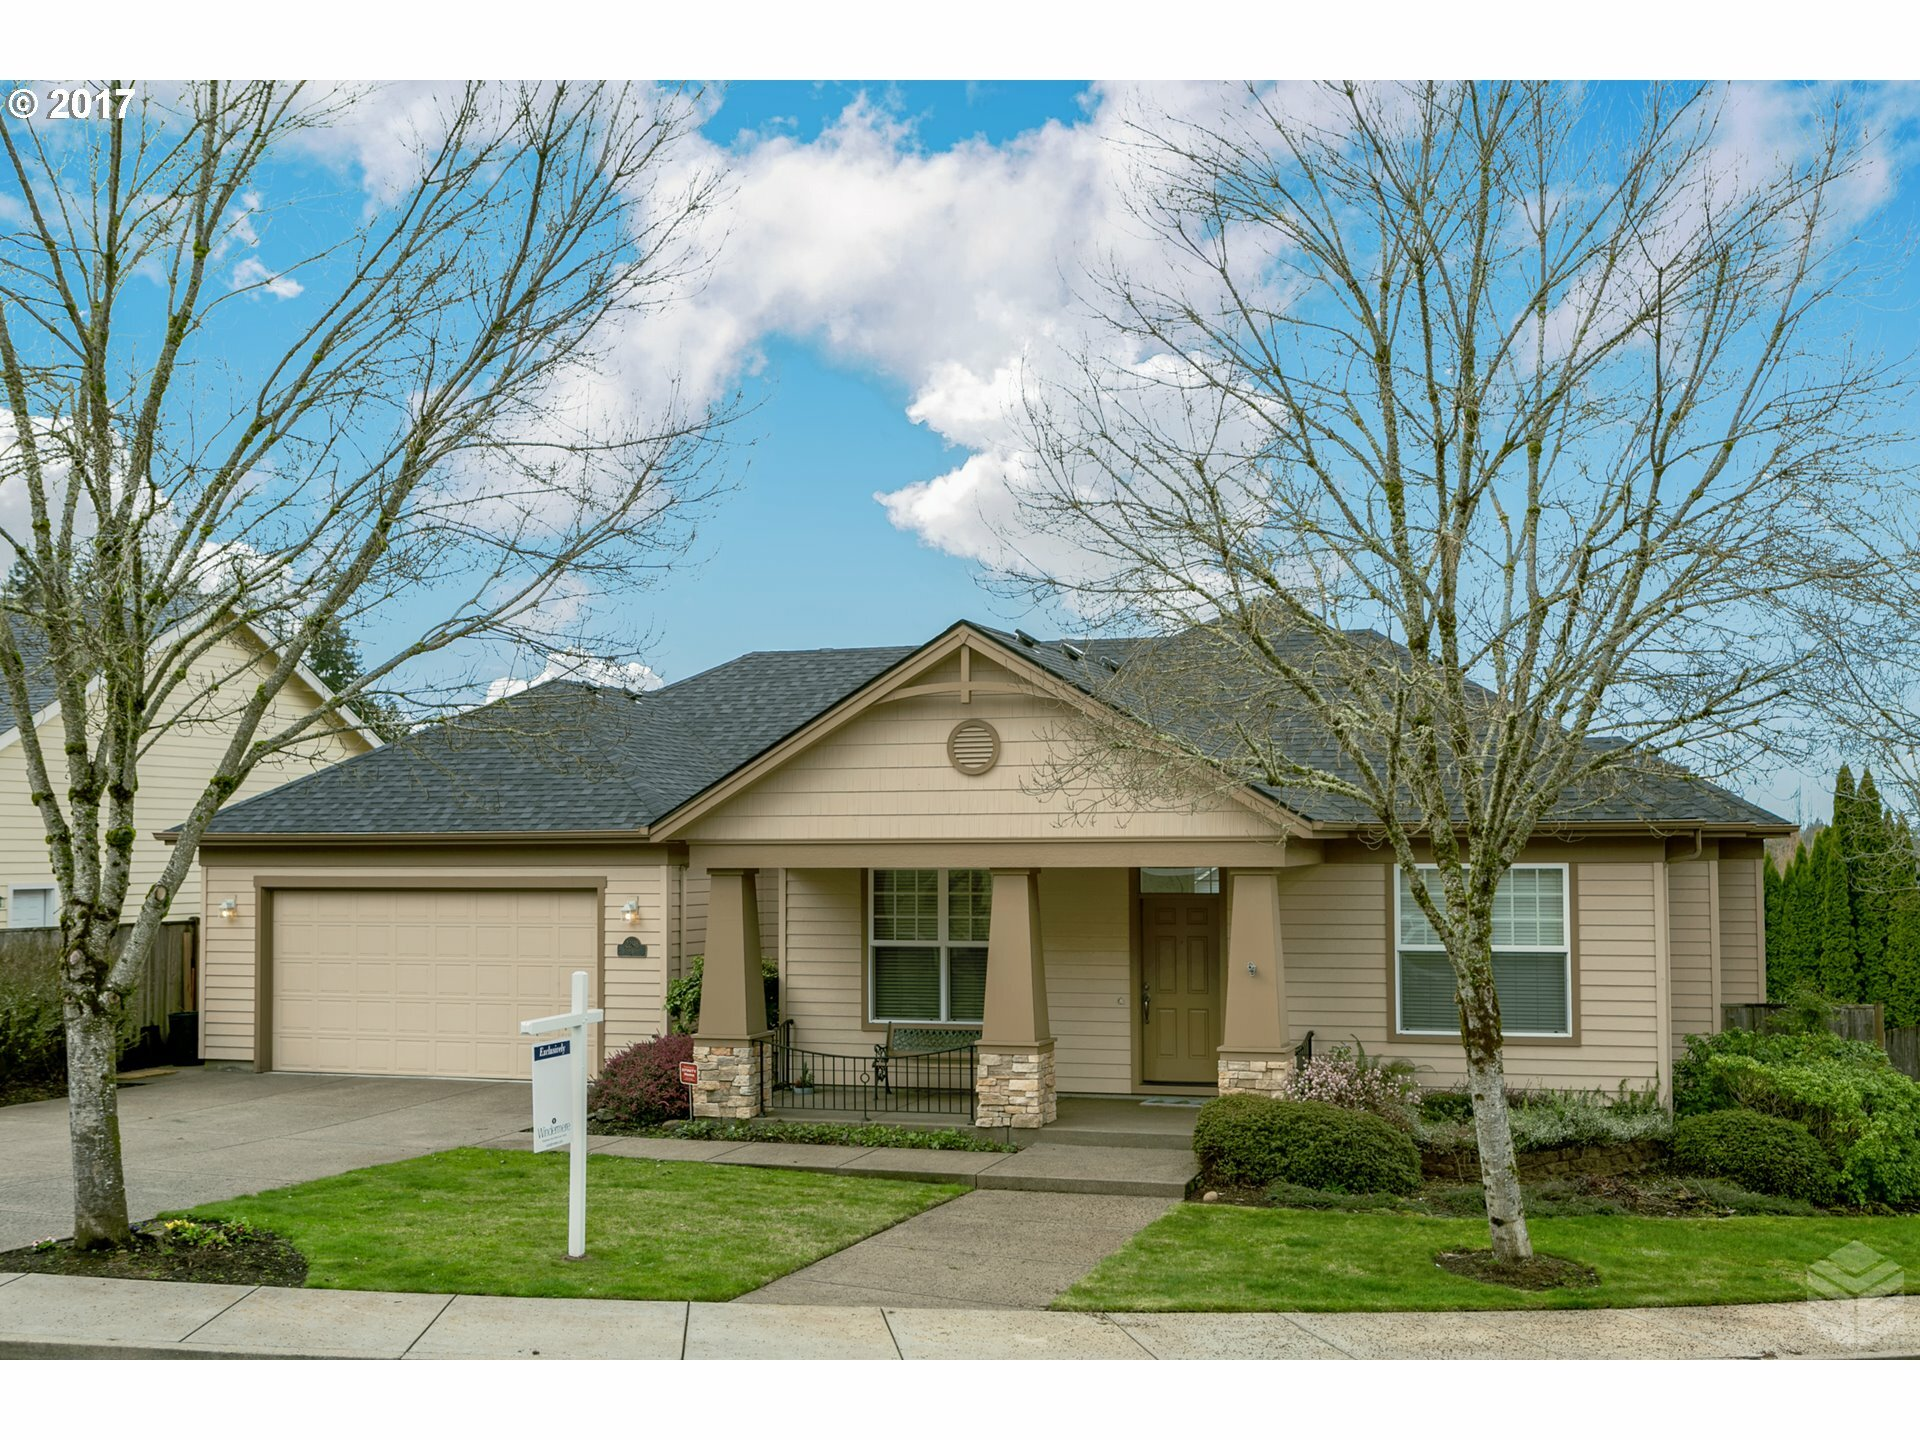 2298 37th St, Springfield, OR - USA (photo 1)